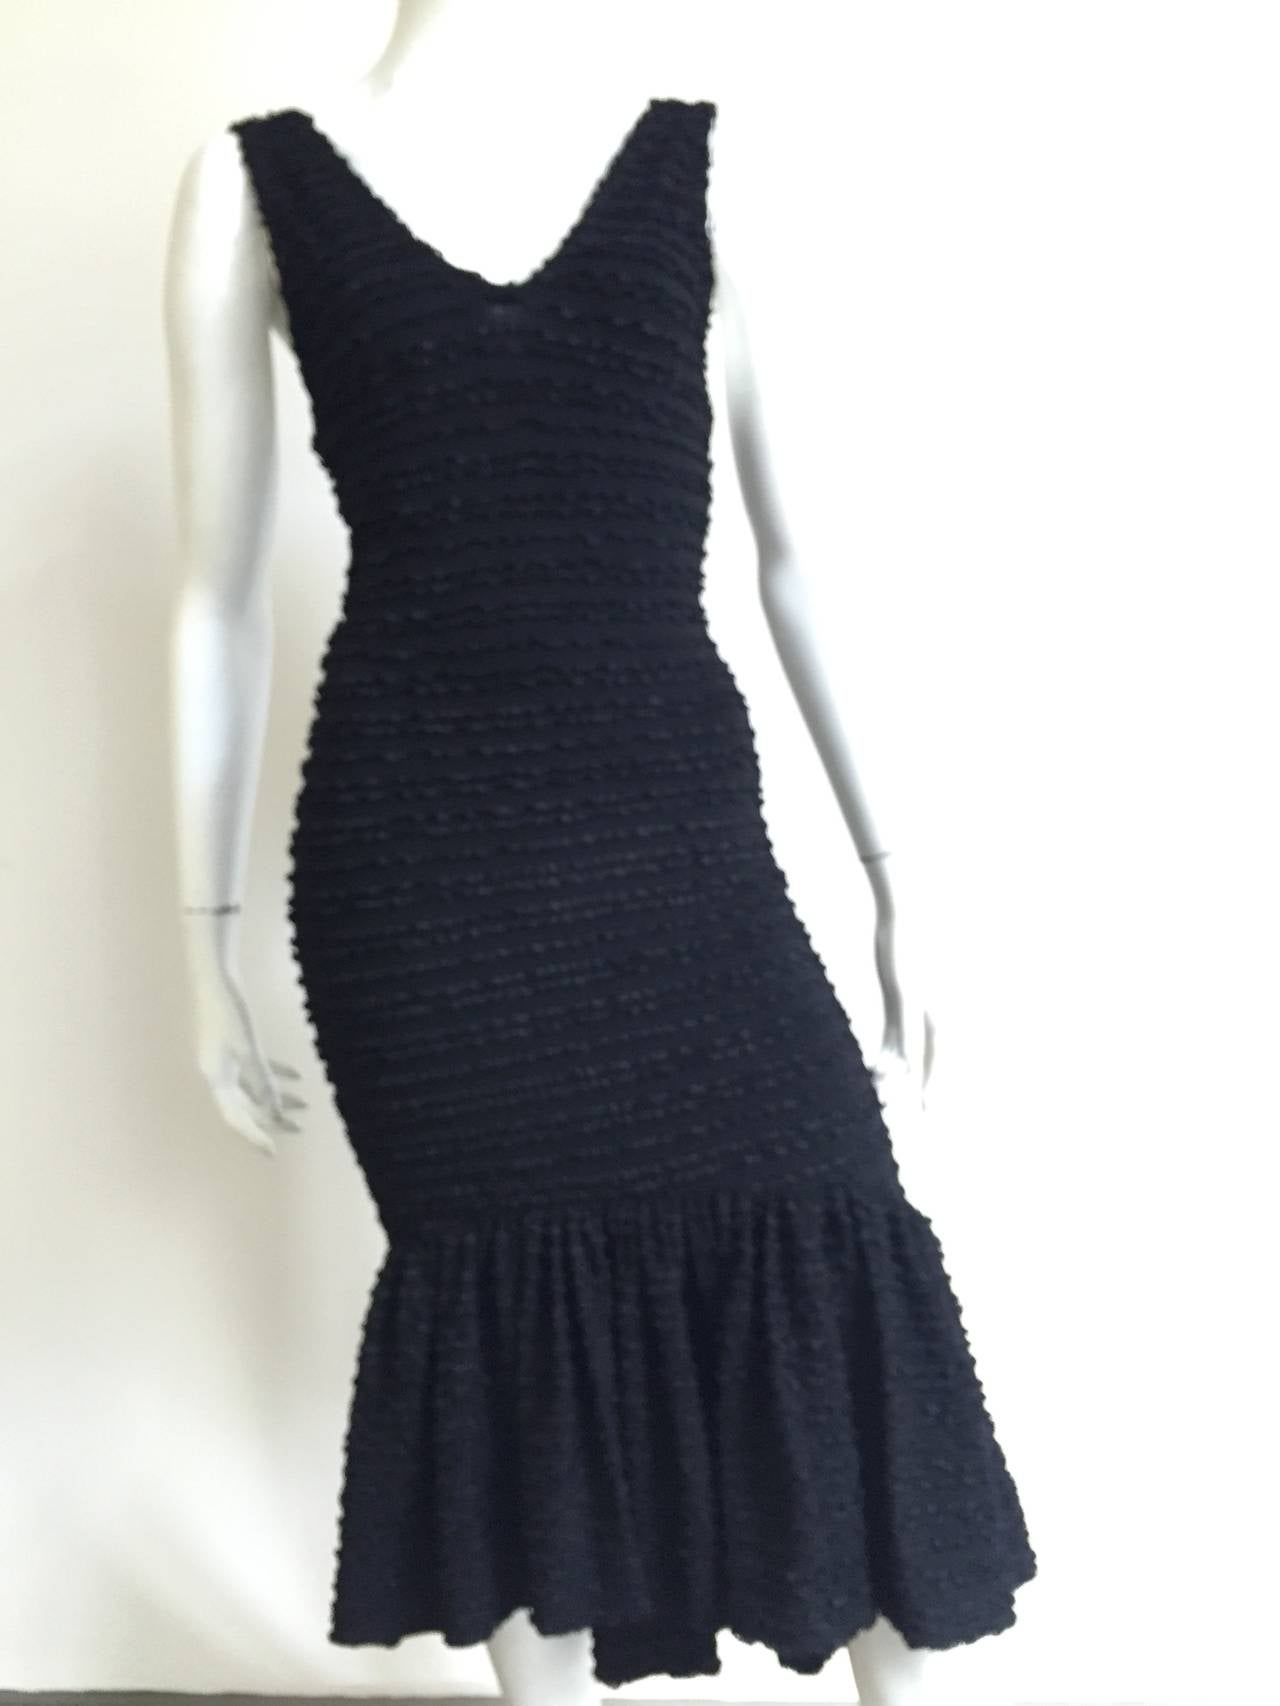 Patrick Kelly Paris 1986 Black Dress Size 4. 10